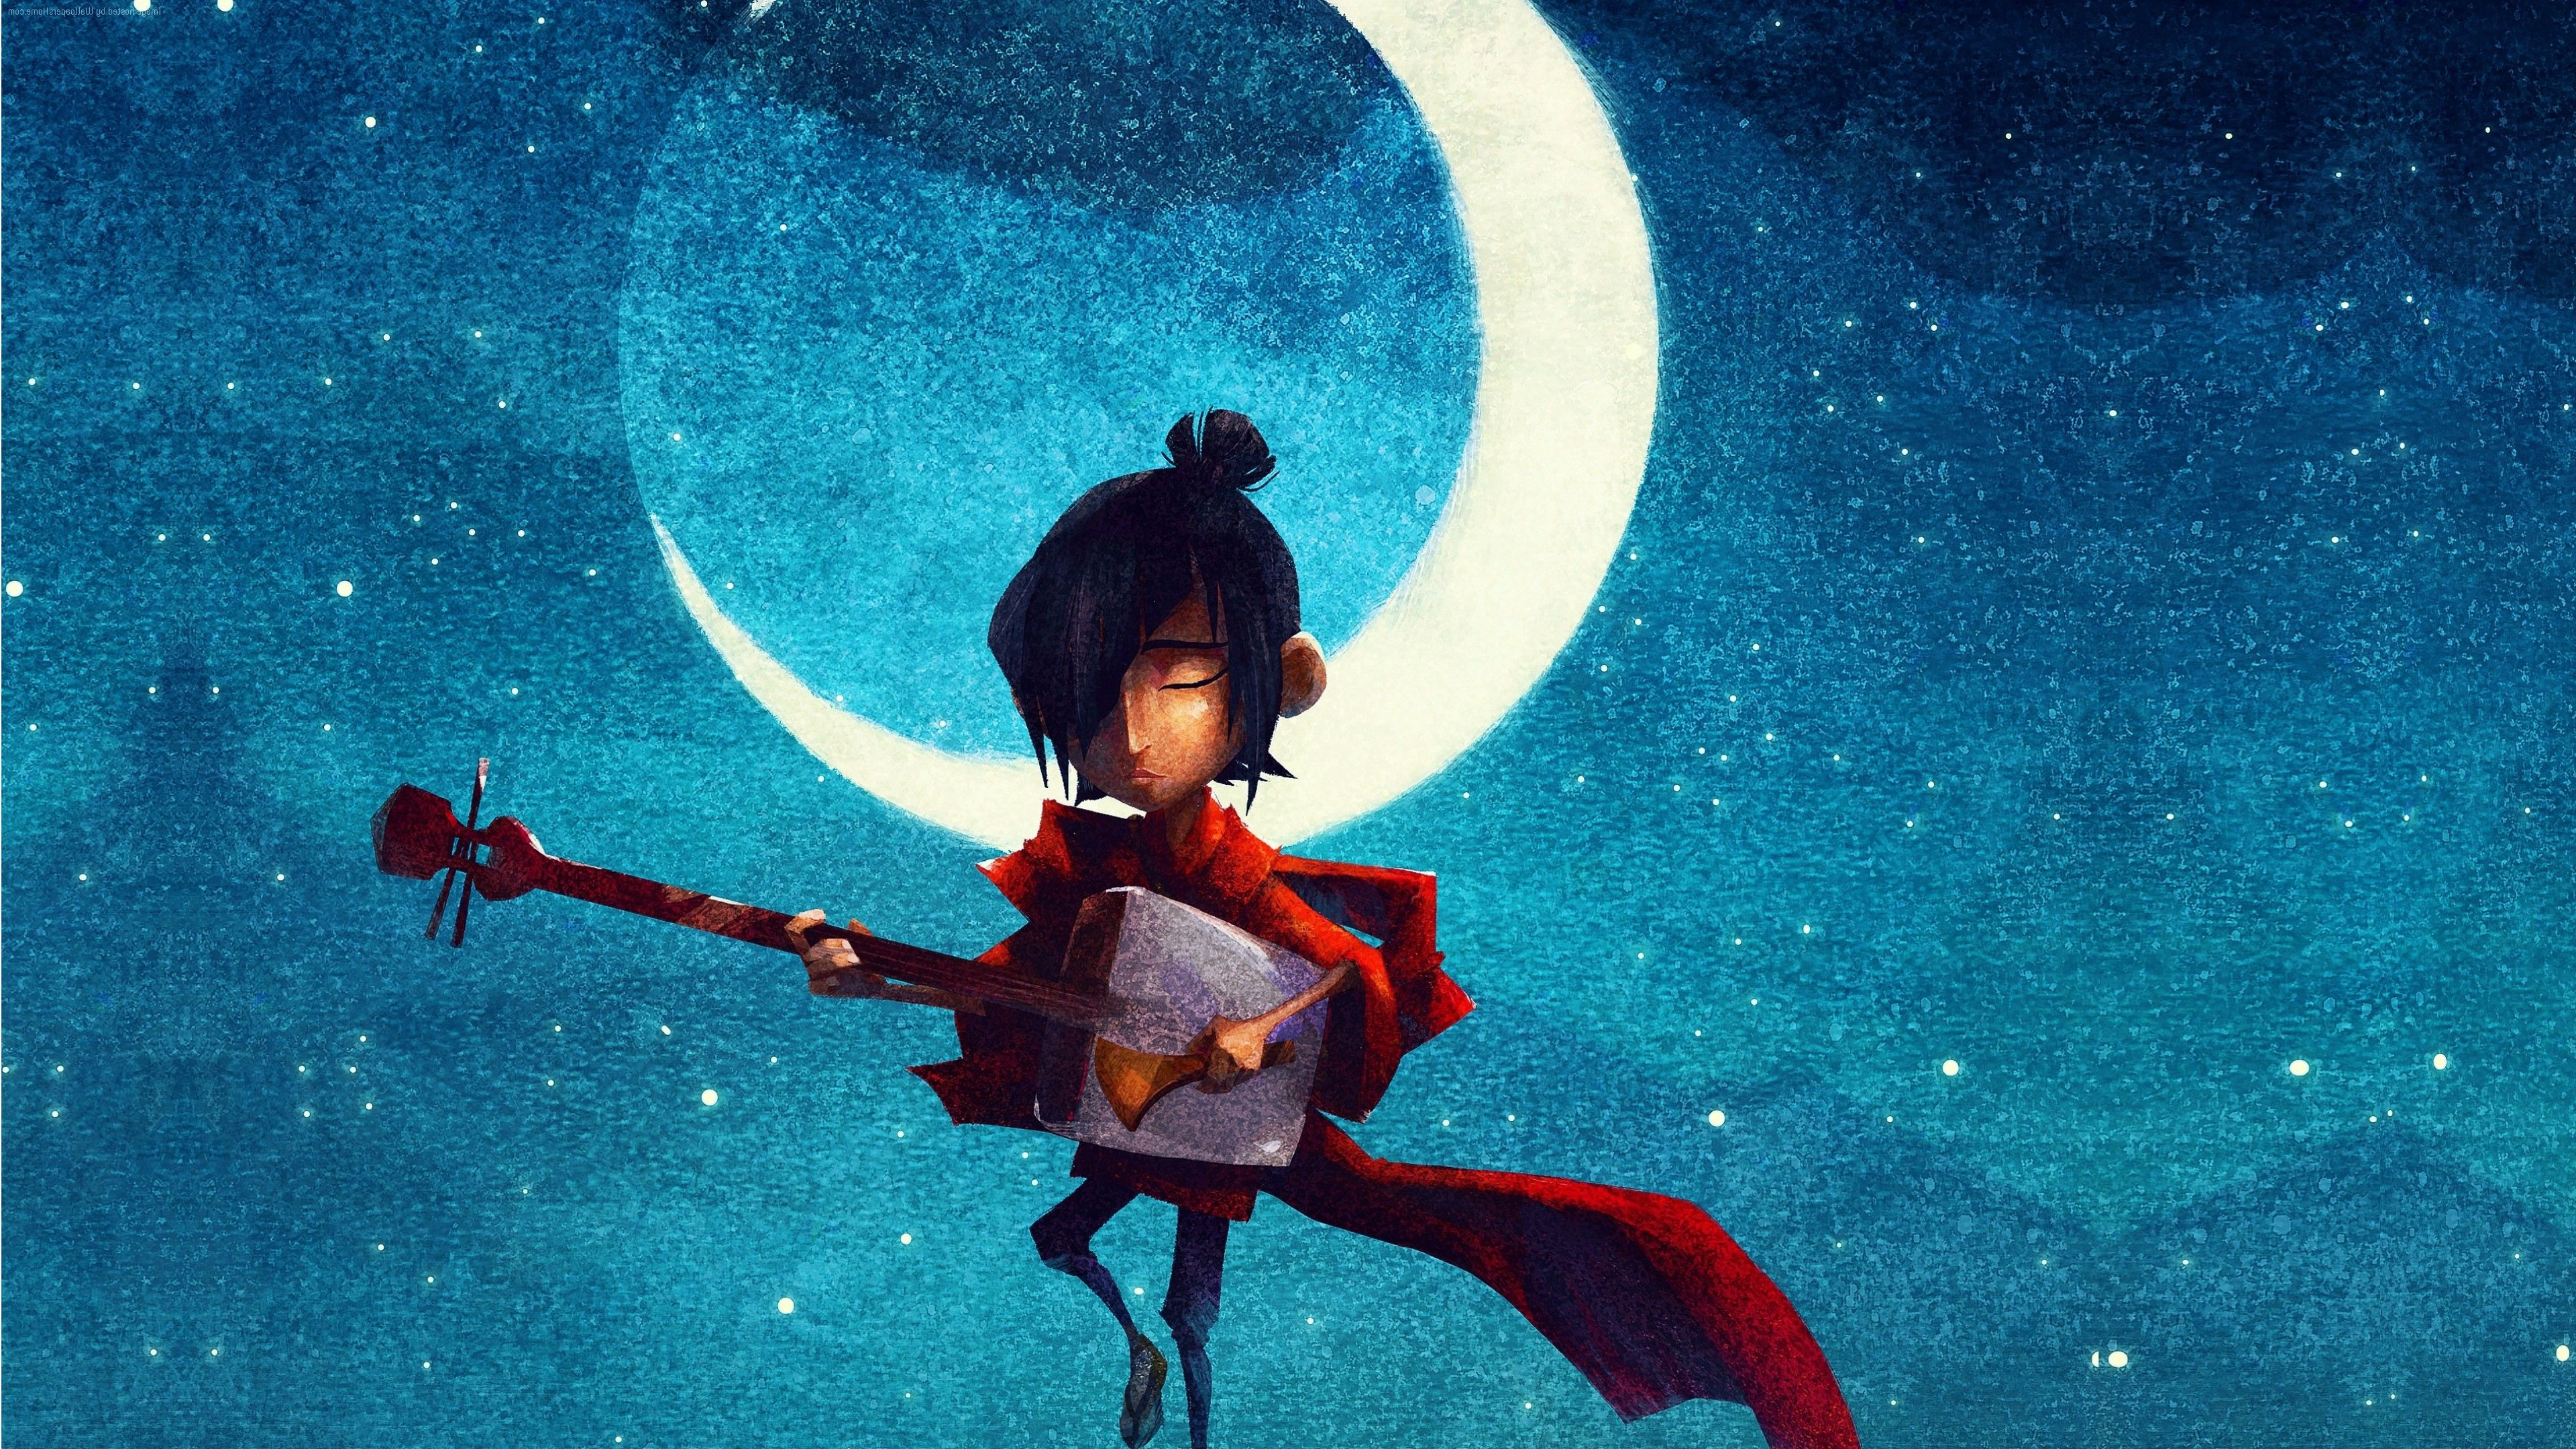 Kubo And The Two Strings Wallpapers Wallpaper Cave